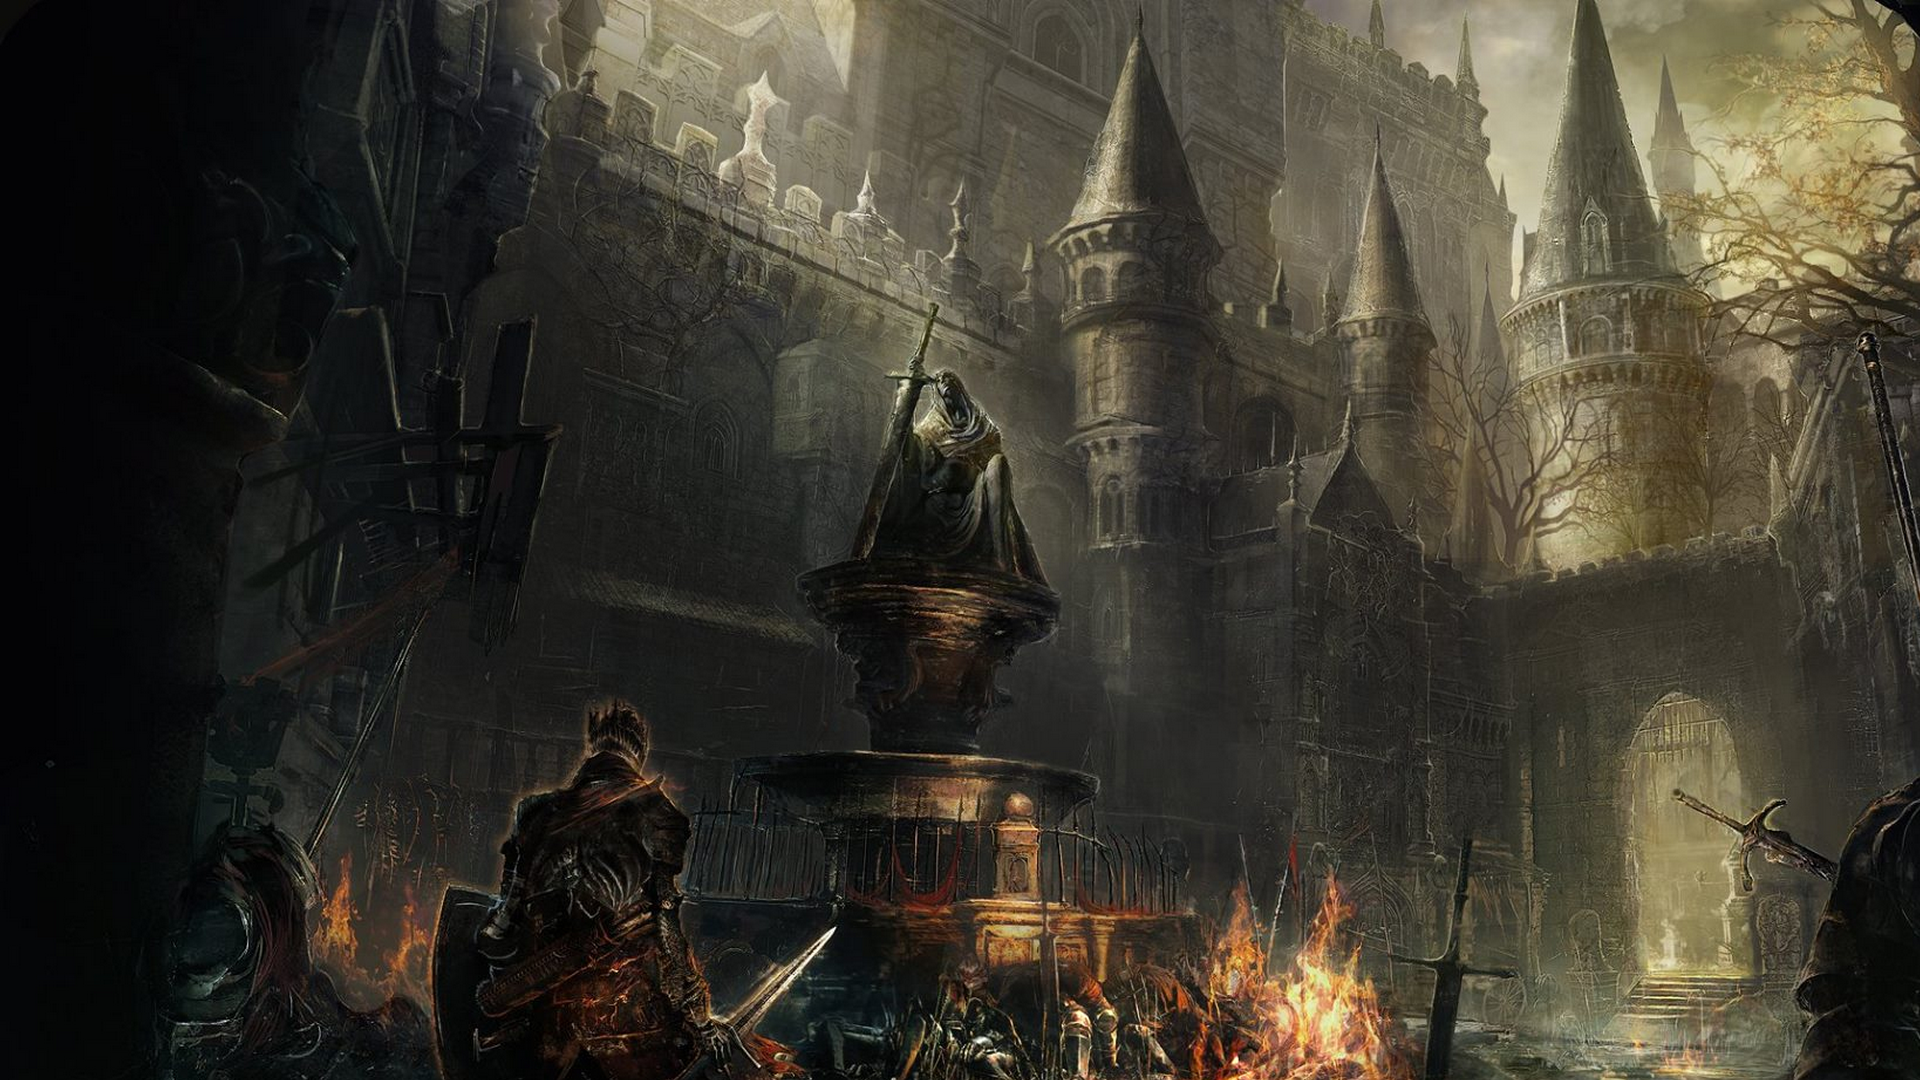 Dark Souls Iii Wallpaper 2 By Wretched Stare On Deviantart